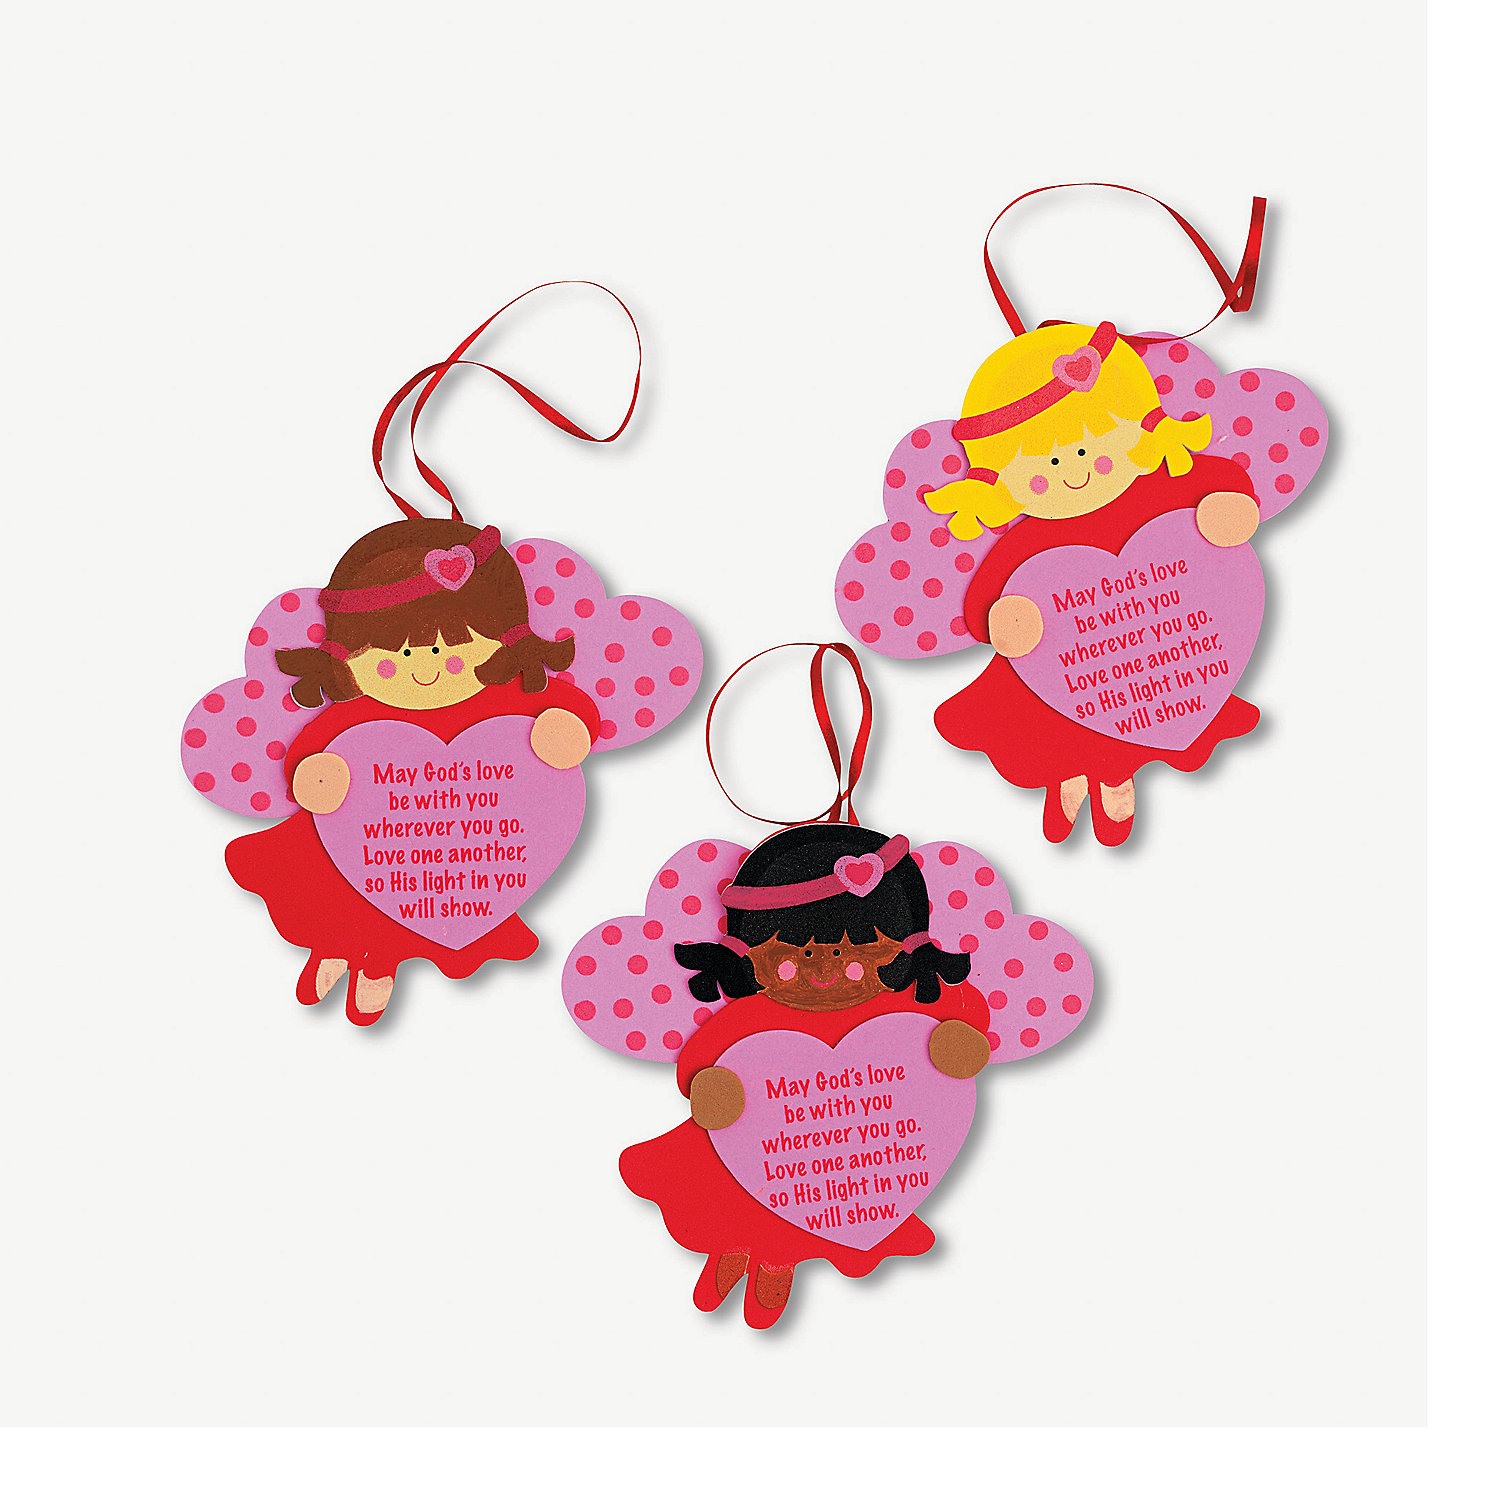 Inspirational valentine angel ornament craft kit for Inspirational valentine crafts